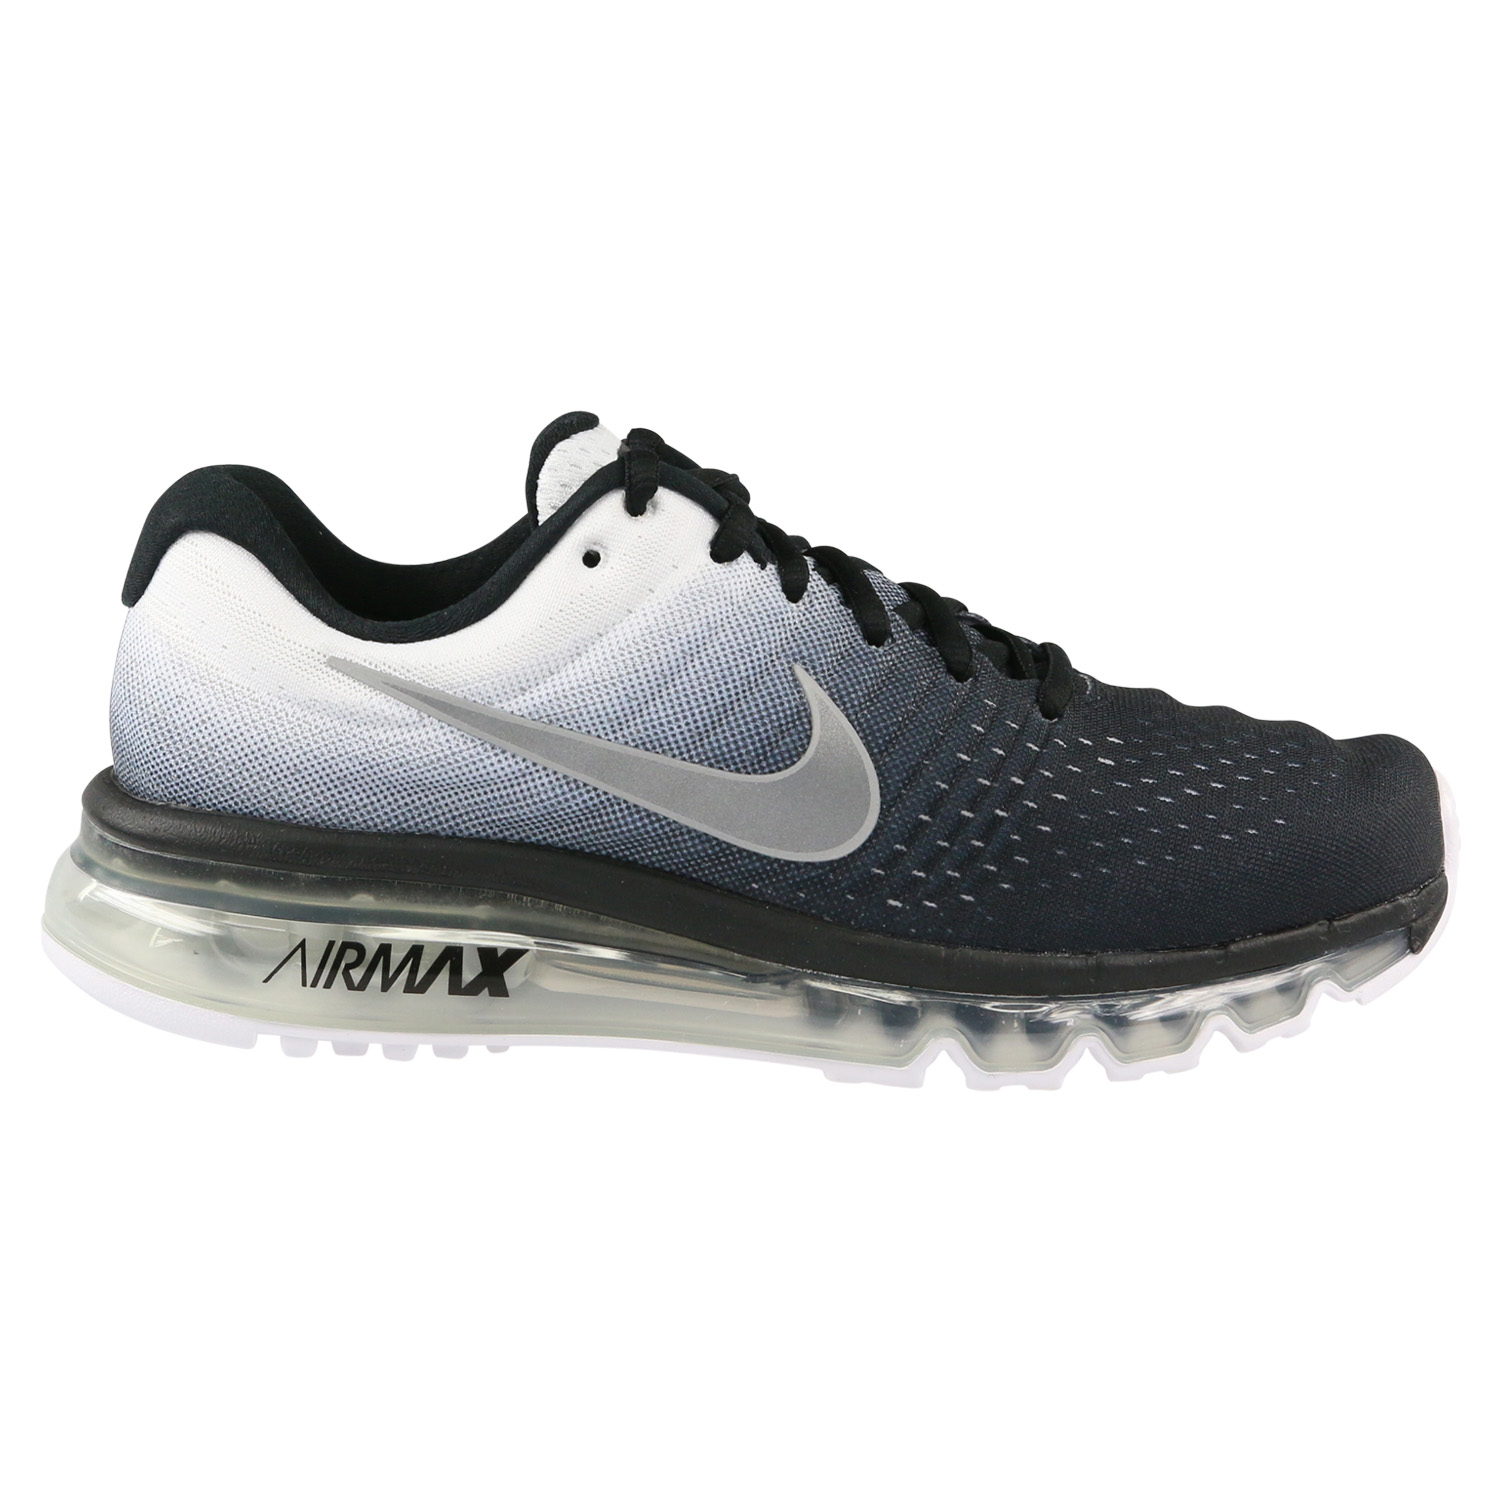 nike air max 2017 gs schuhe turnschuhe sneaker. Black Bedroom Furniture Sets. Home Design Ideas